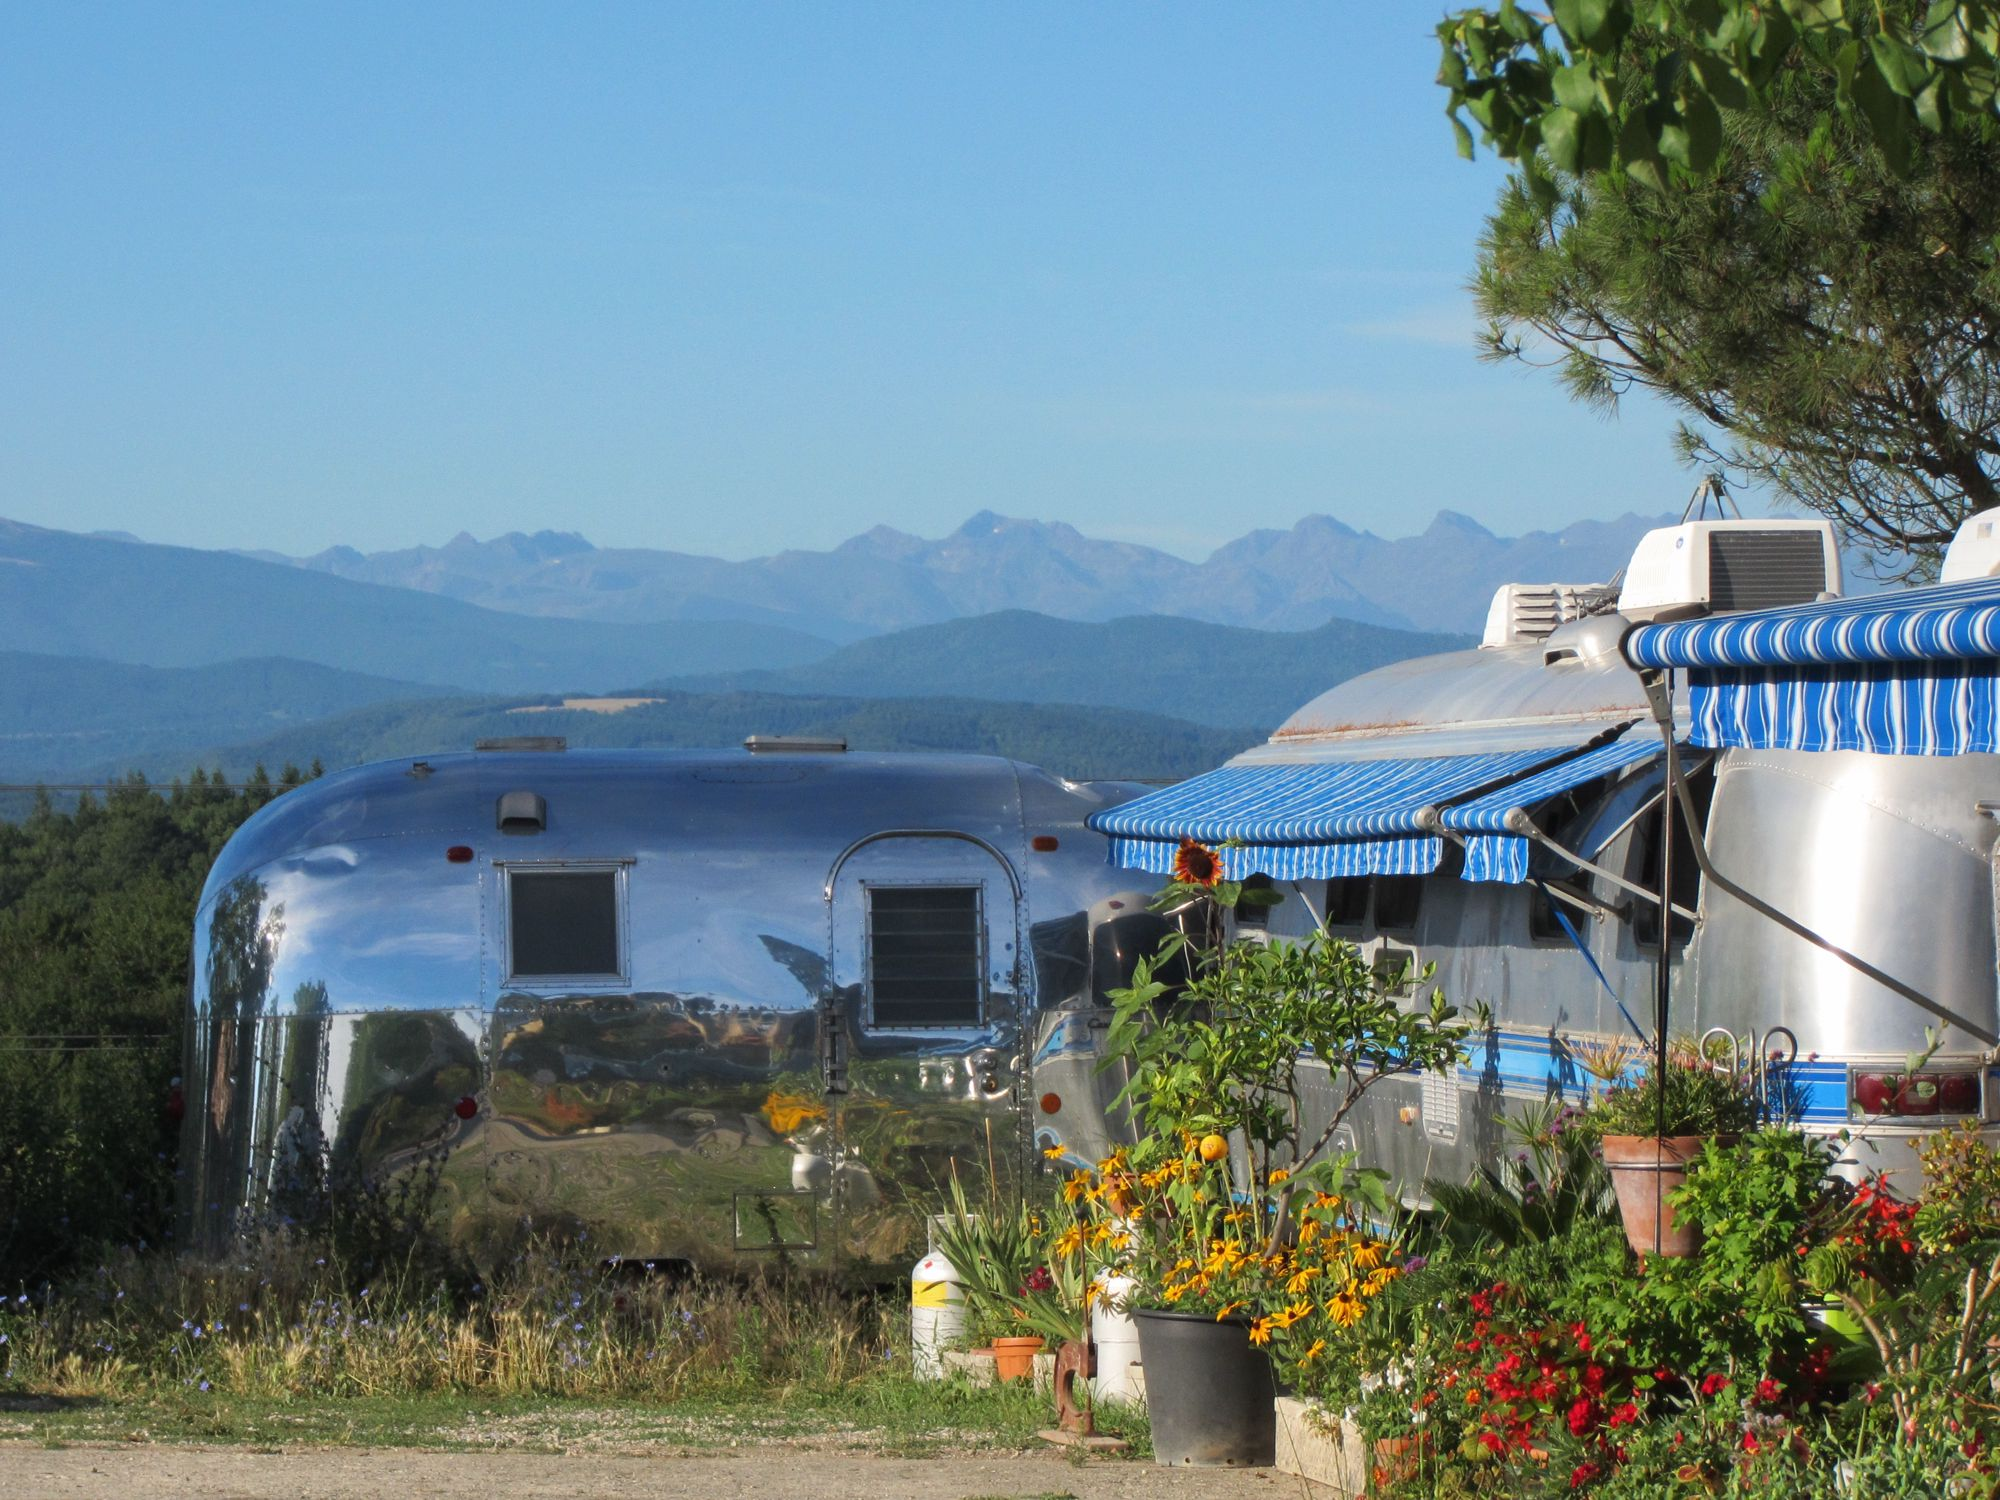 Airstream trailers, vintage caravans, glampers and campers (retro tents preferred). Europe's first retro Airstream trailer park, in the foothills of the Pyrénées.